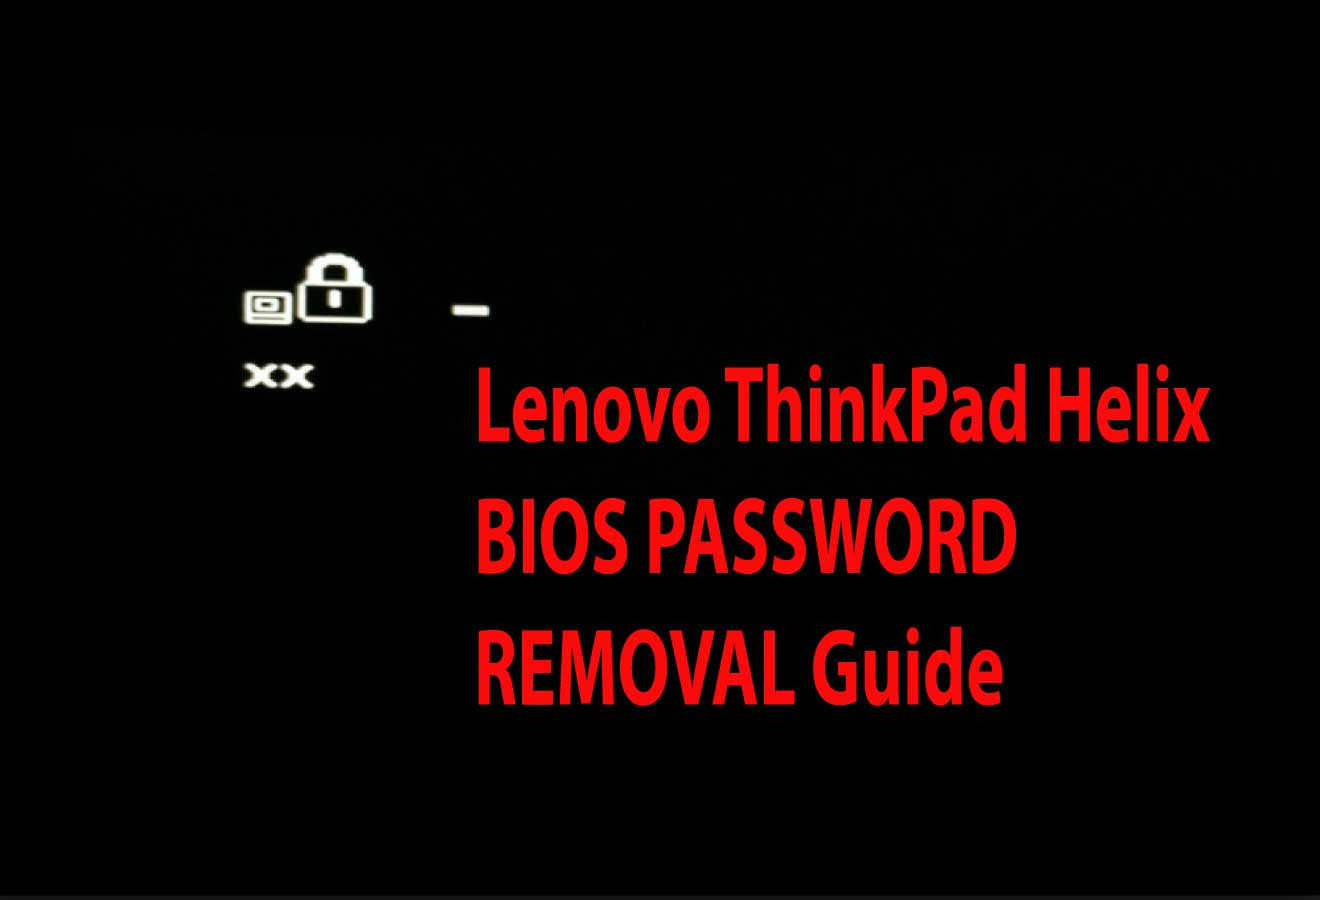 Lenovo ThinkPad Helix BIOS PASSWORD REMOVAL Guide